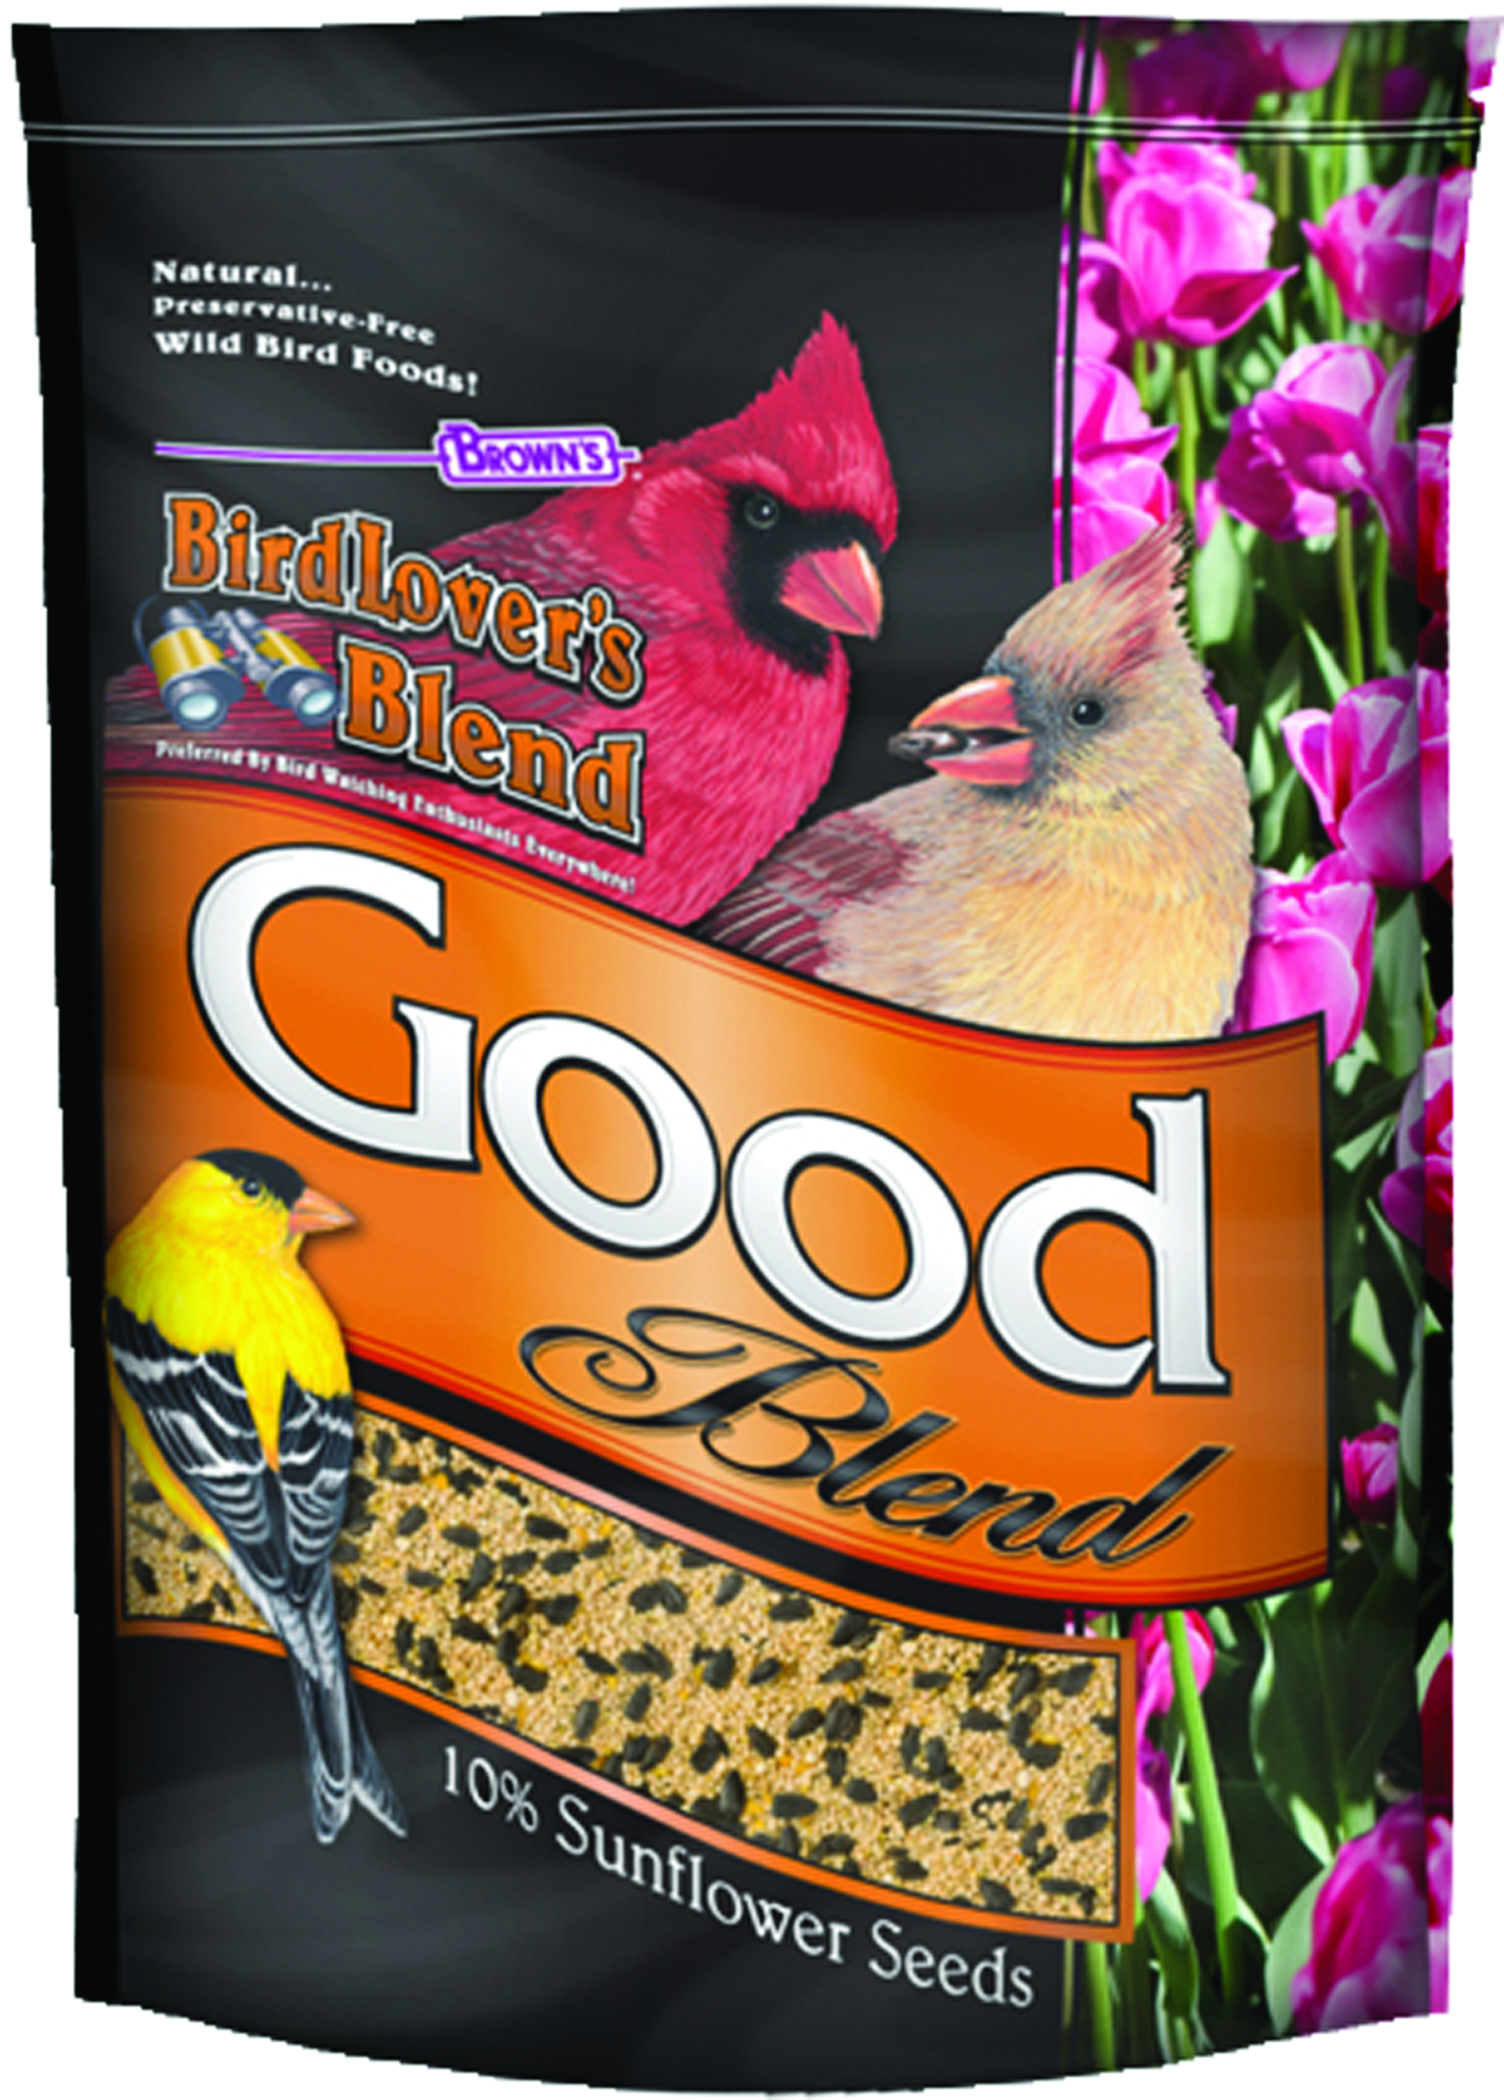 BIRD LOVERS BLEND GOOD BLEND